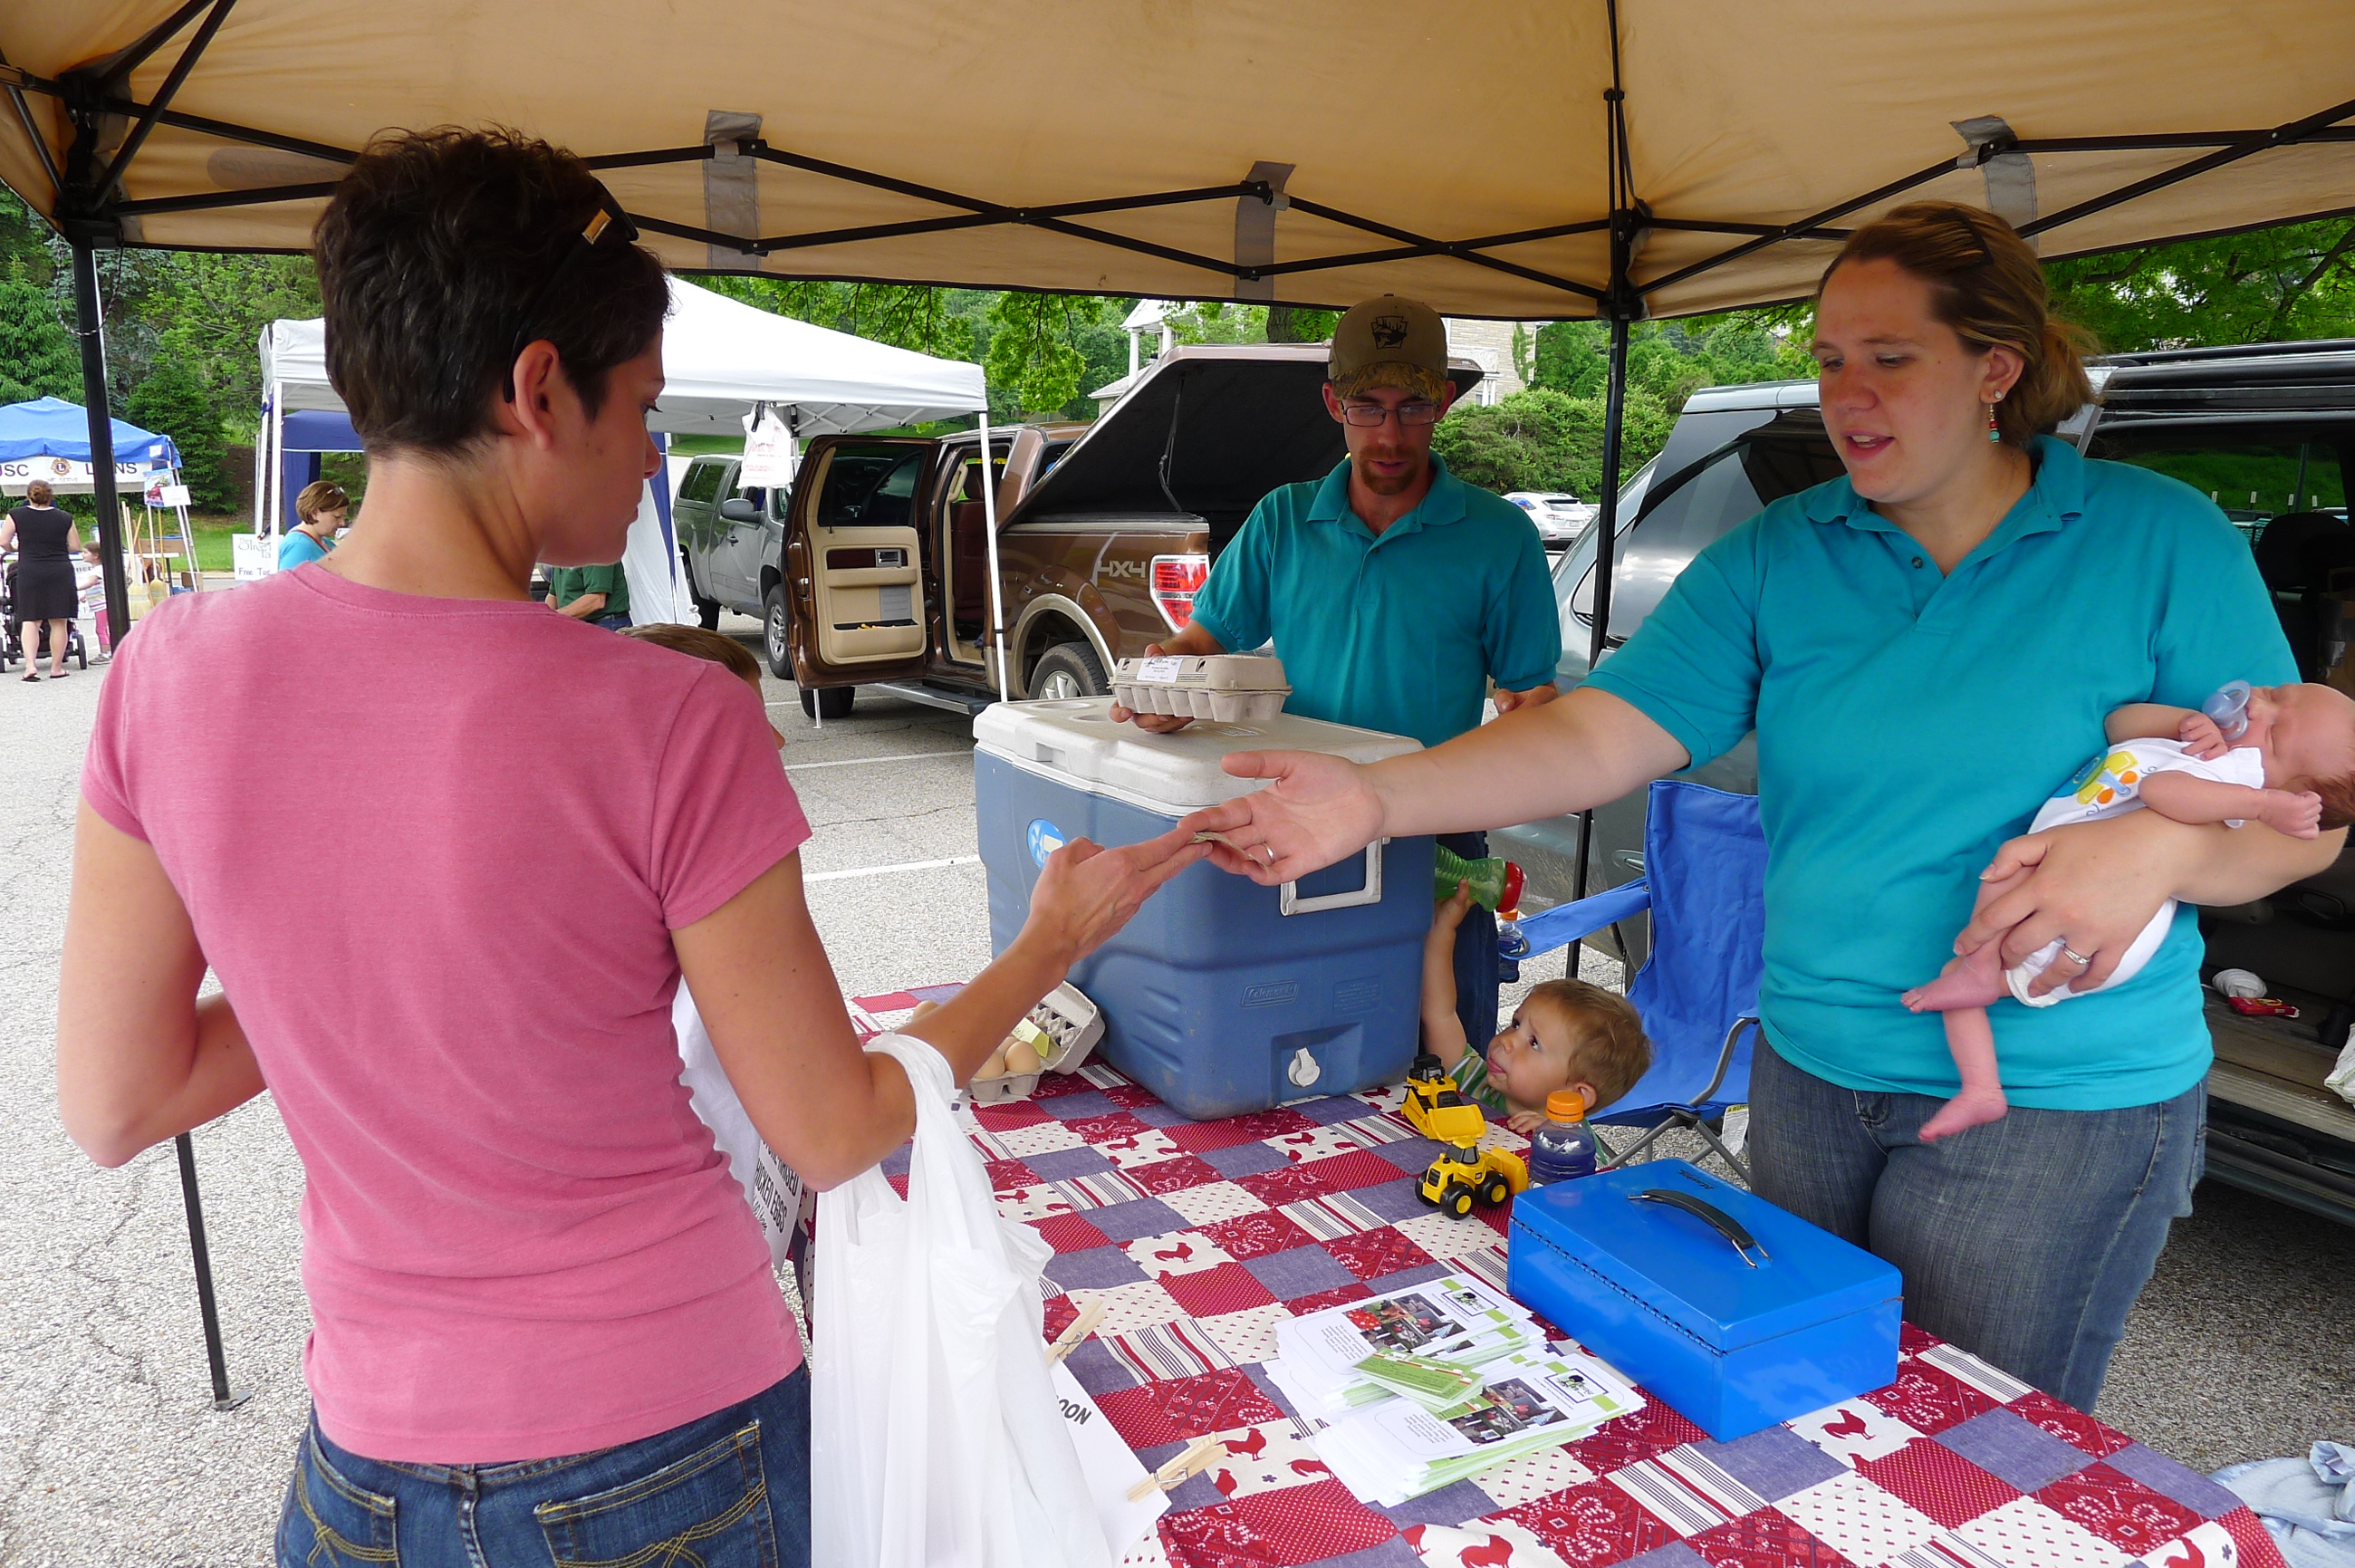 P1230865-17 Tara Burns held 10-day-old Patrick in one arm and made change with her other arm while keeping an eye on son Micah, 2. Pete Burns hands the customer her eggs from their Heritage Farm in Ridgway at opening day at the Upper St. Clair Farmers Market on May 29.